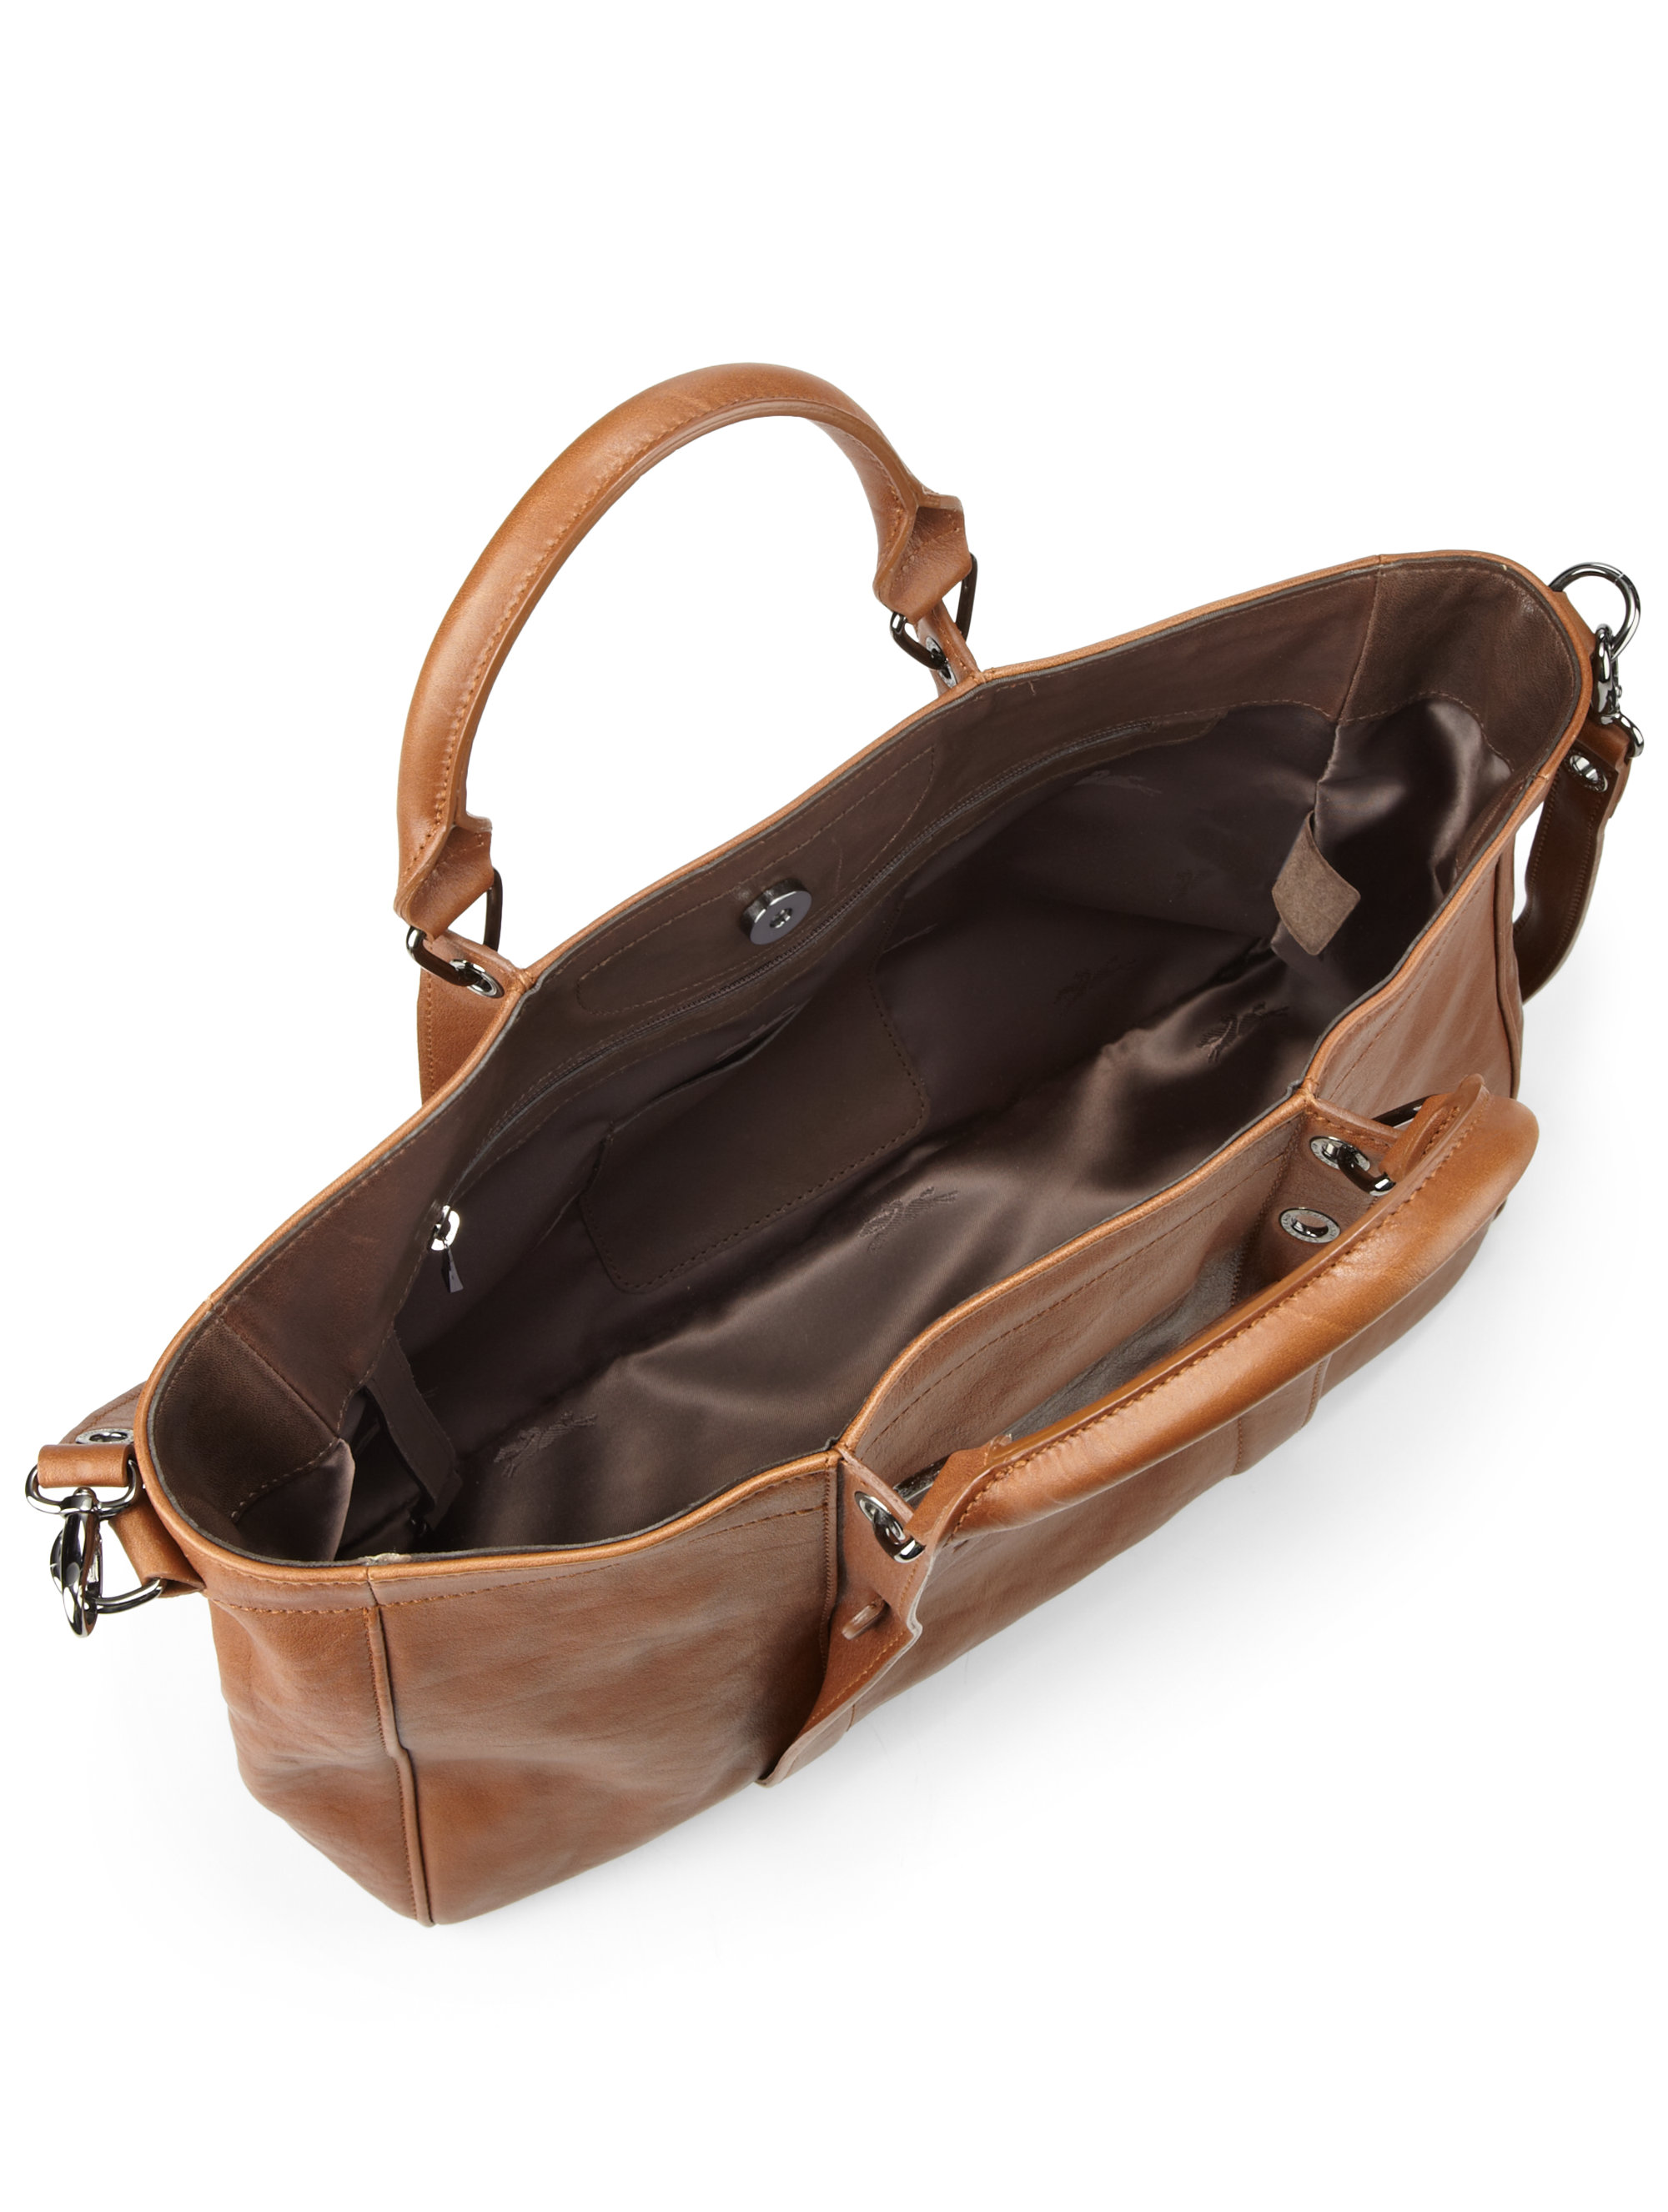 Longchamp Small Leather Tote Bag in Brown | Lyst